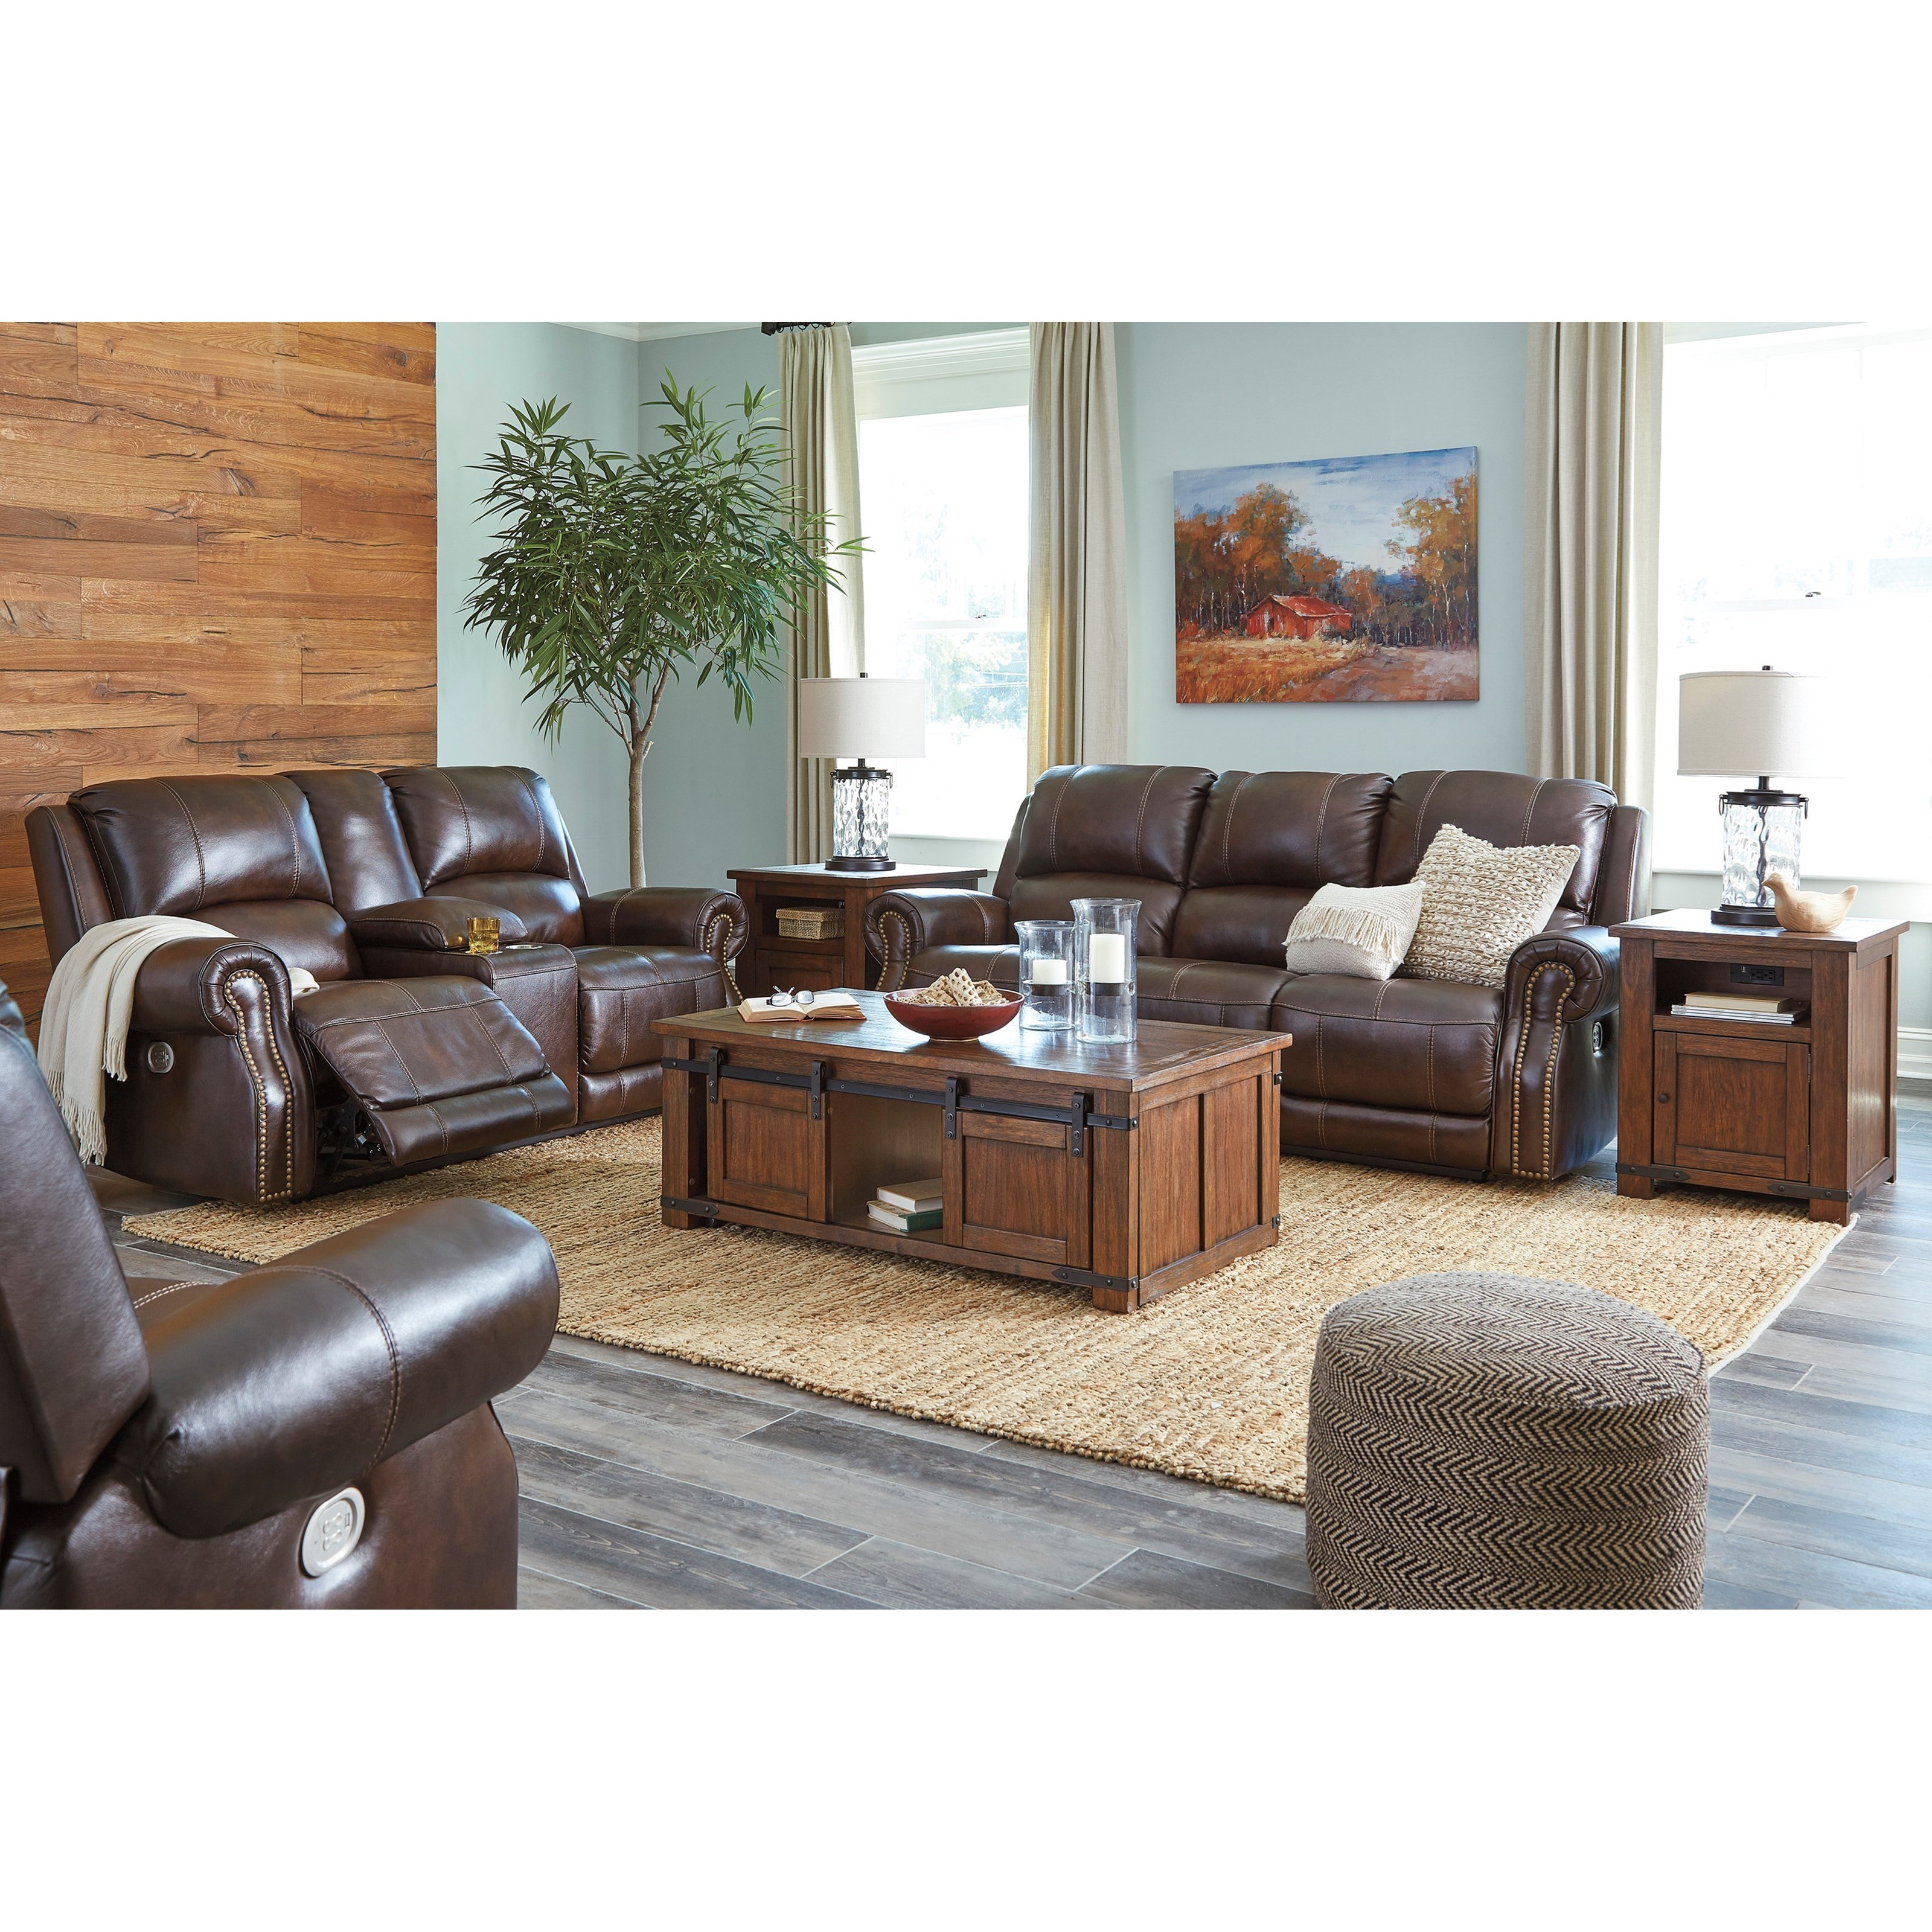 Buncrana Reclining Living Room Group by Signature Design by Ashley at Northeast Factory Direct